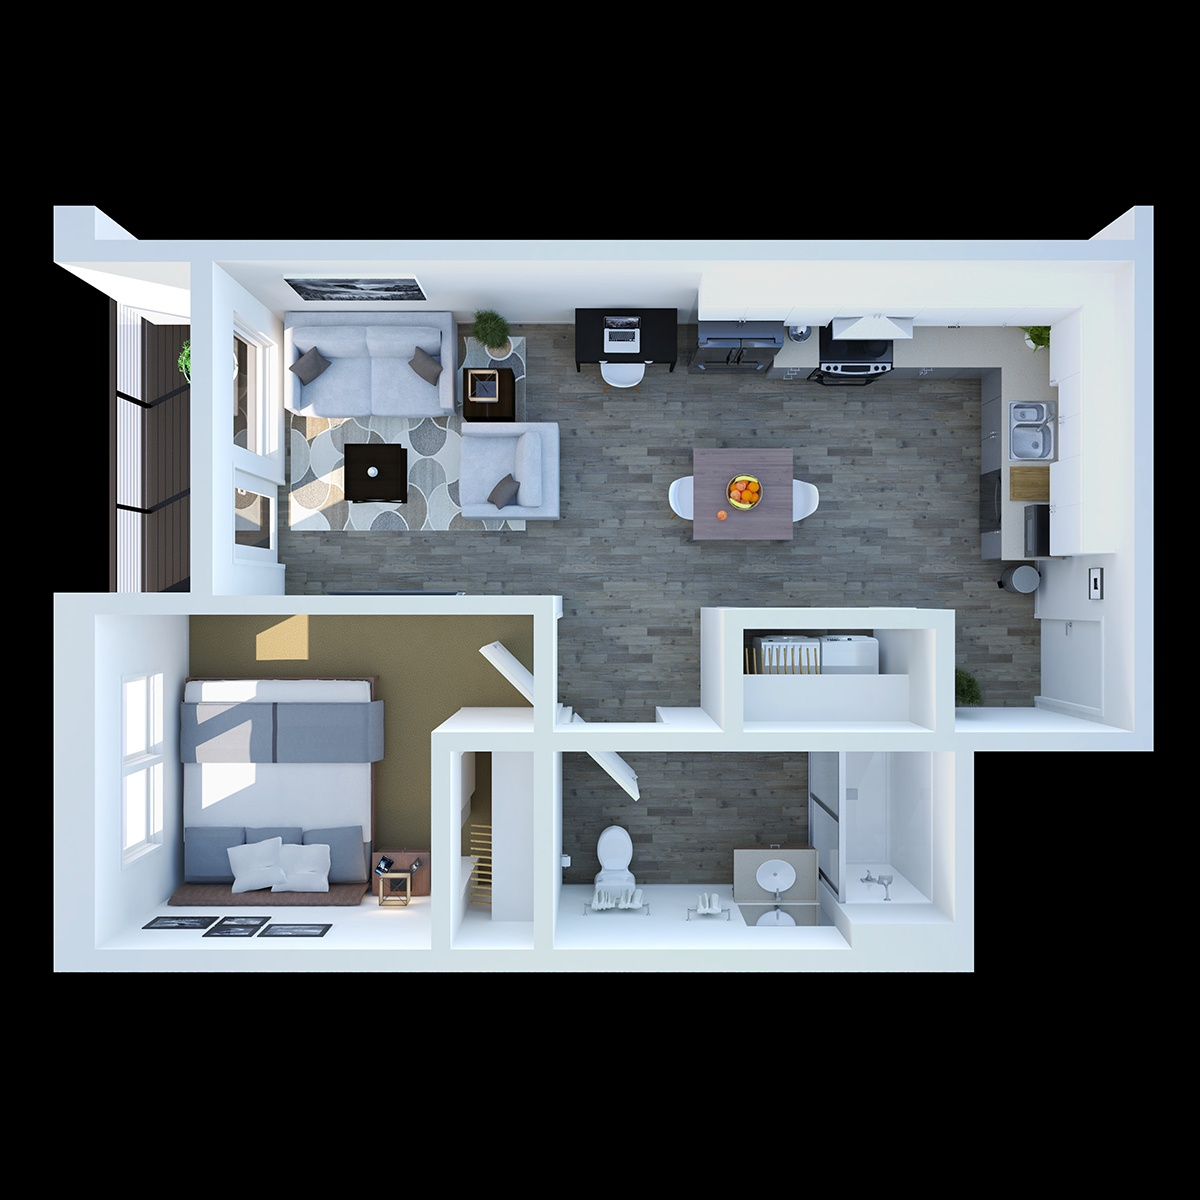 One Bedroom - This is our practical one bedroom, one bathroom floor plan featuring with 642 sq. ft. of living space.